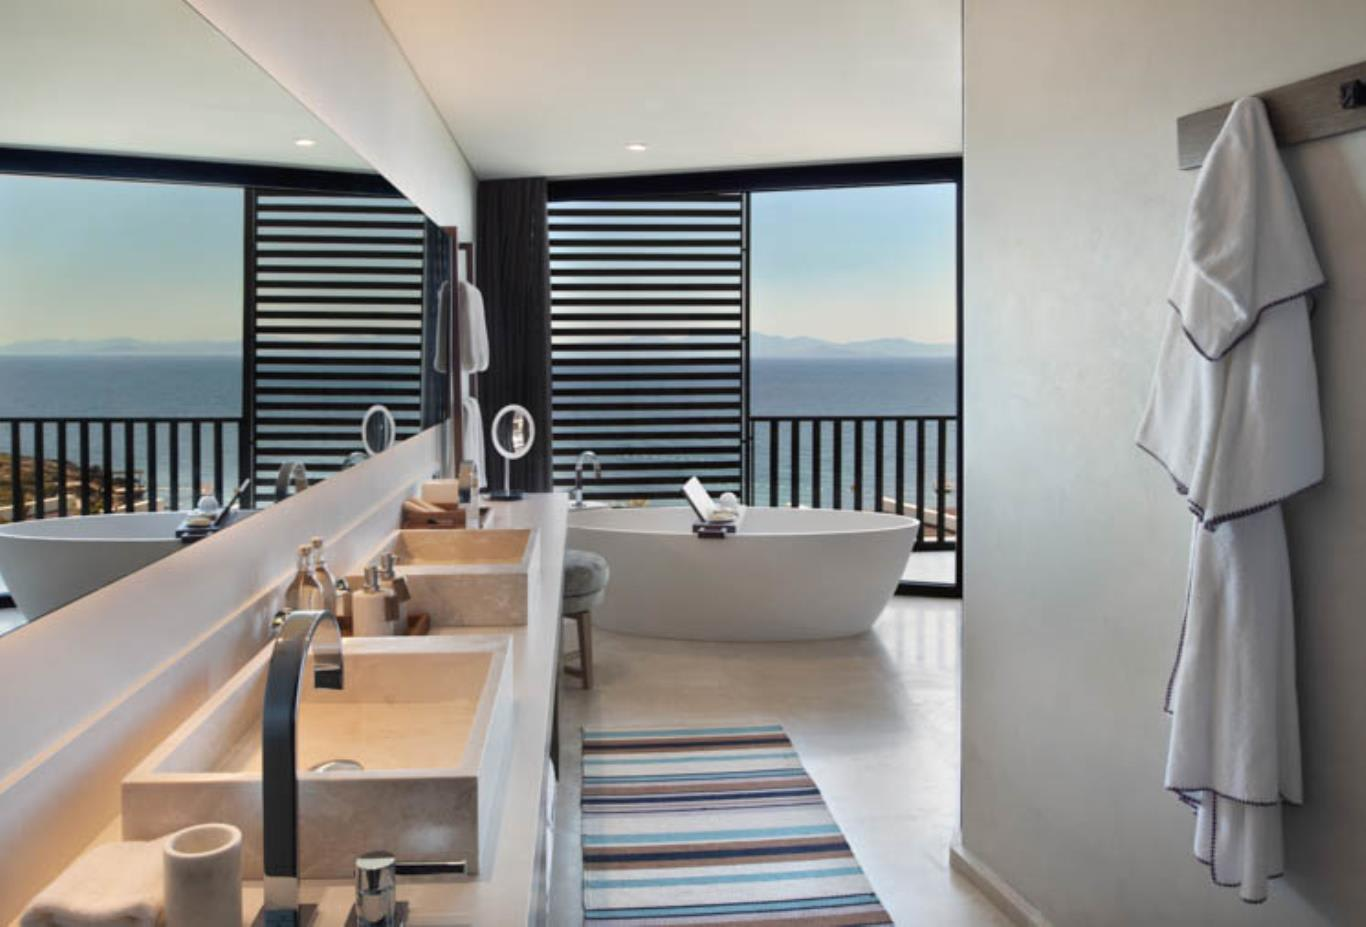 Seaview Deluxe Room bathroom